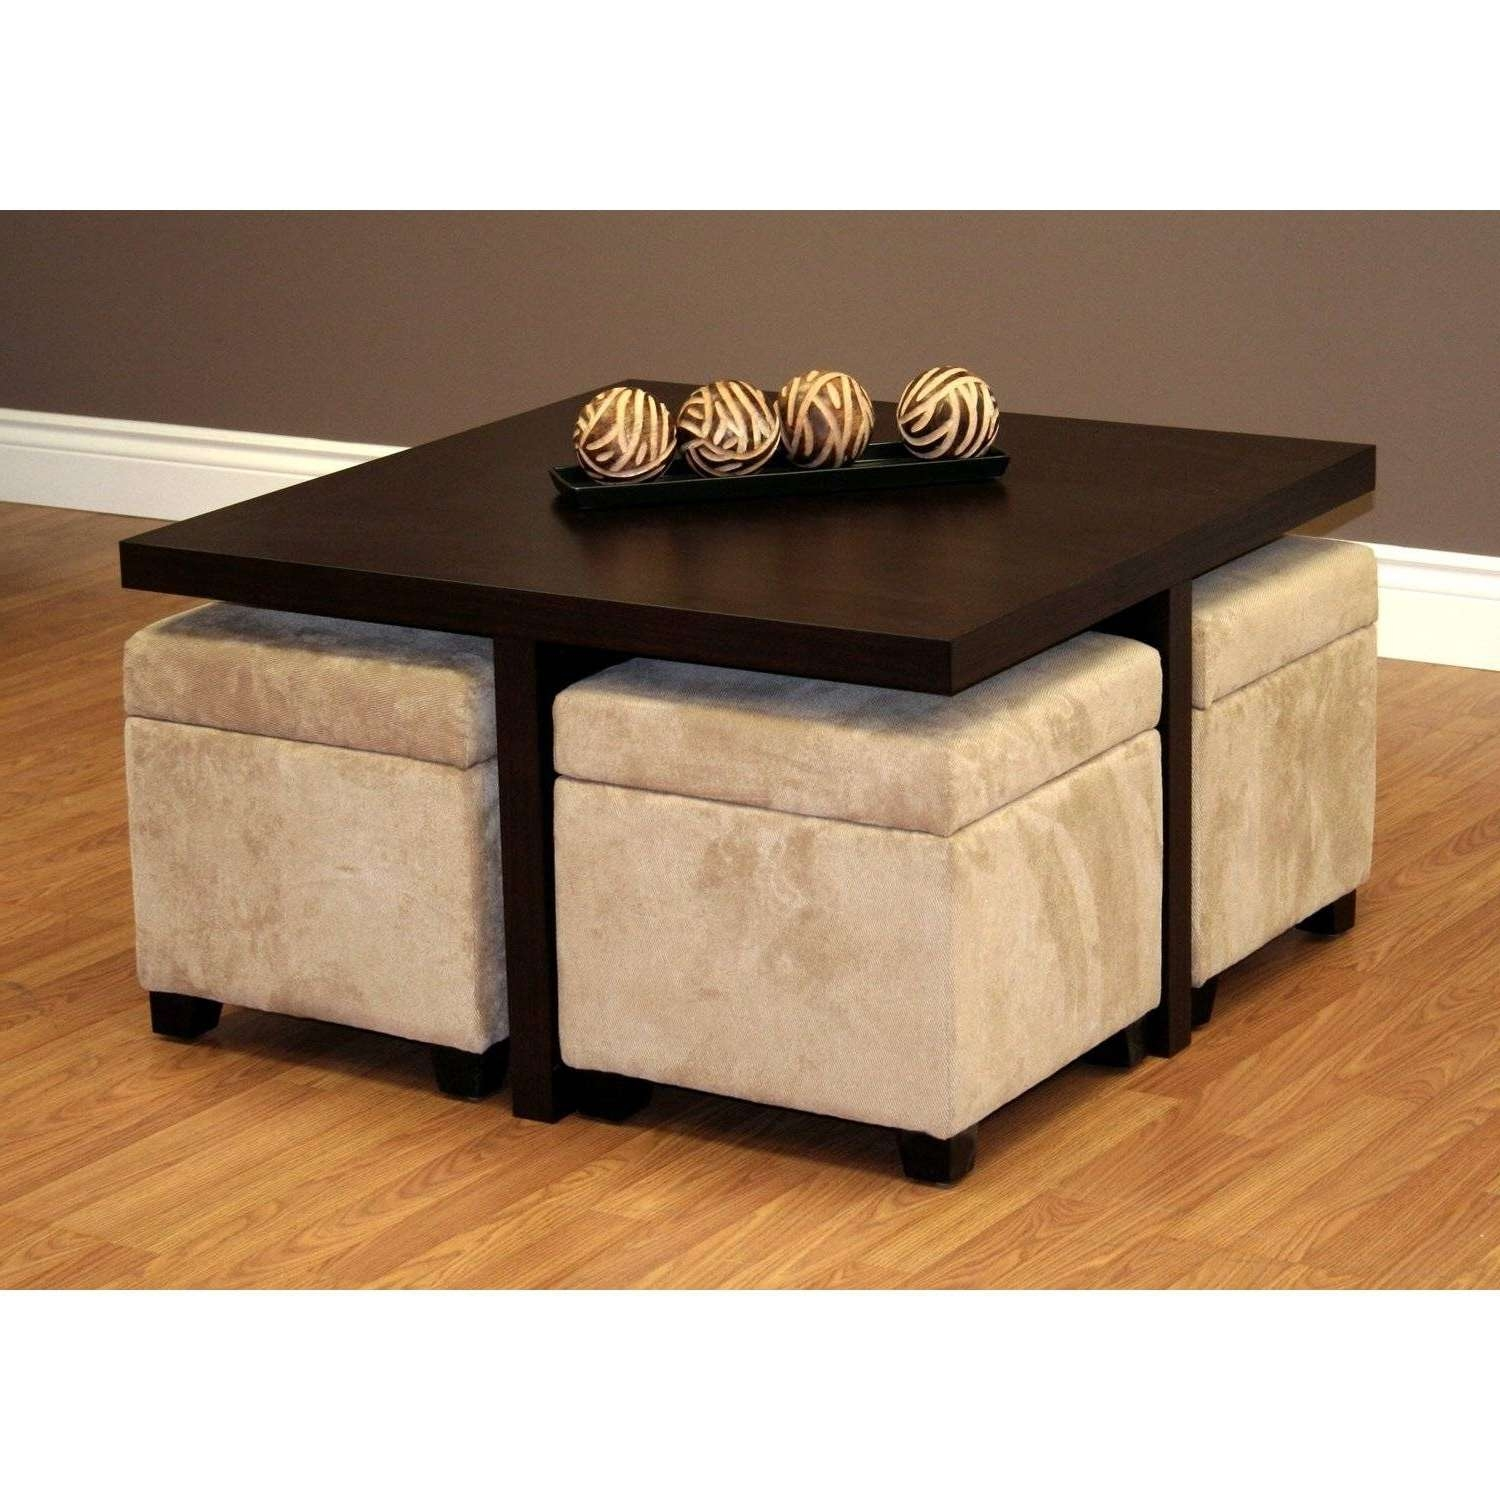 Kanson Coffee Table Storage Cubes • Coffee Table Ideas Within Favorite Square Coffee Tables With Storages (View 20 of 20)